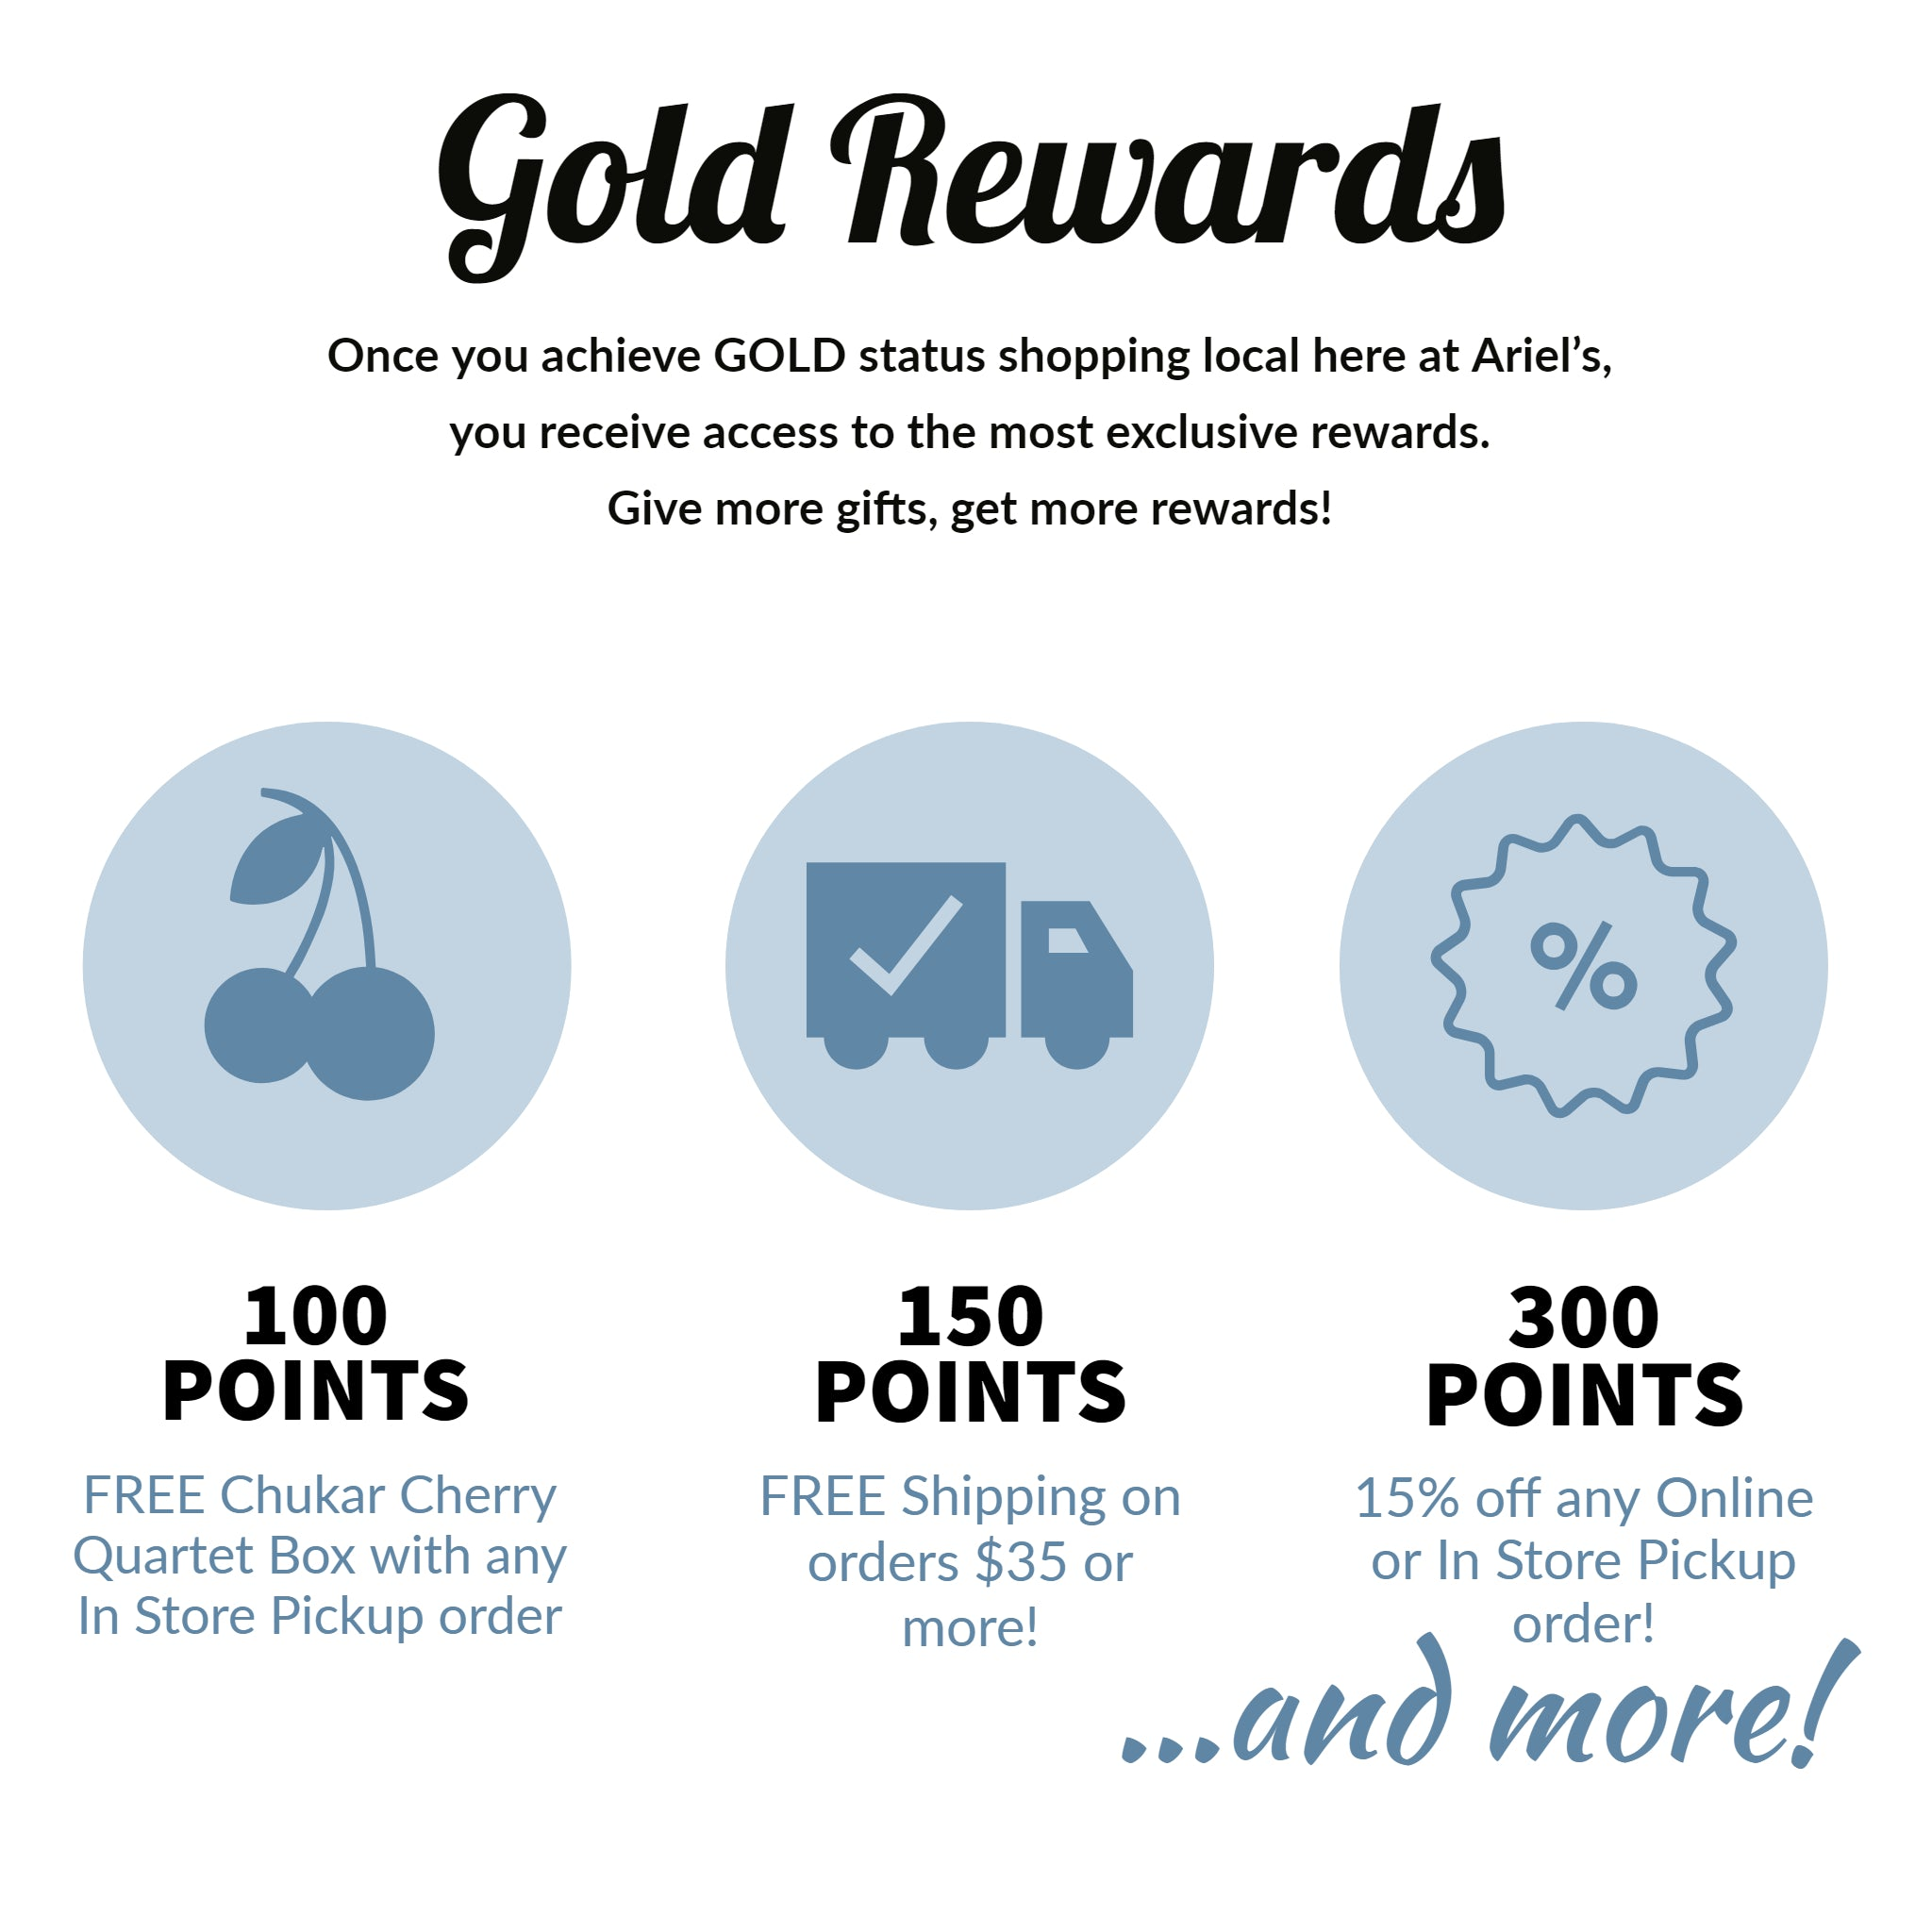 Gold Rewards